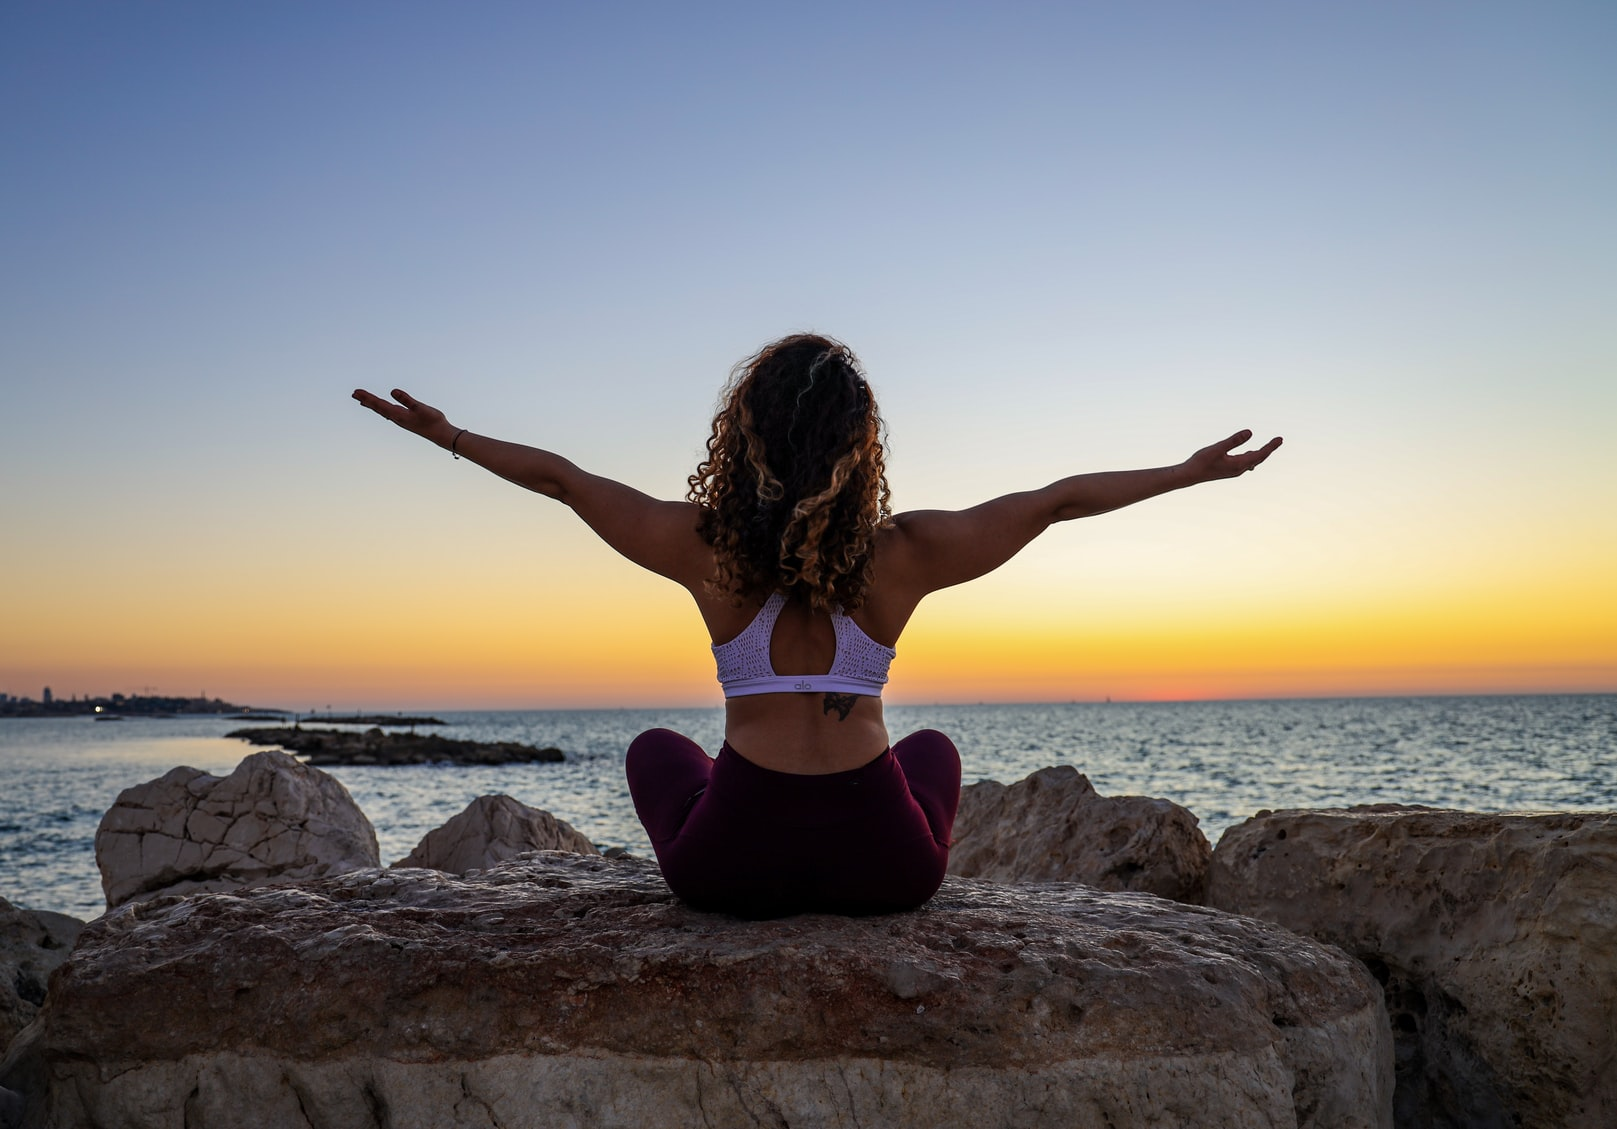 Does yoga help in reducing weight/fat? How to choose an online yoga class for impactful results?